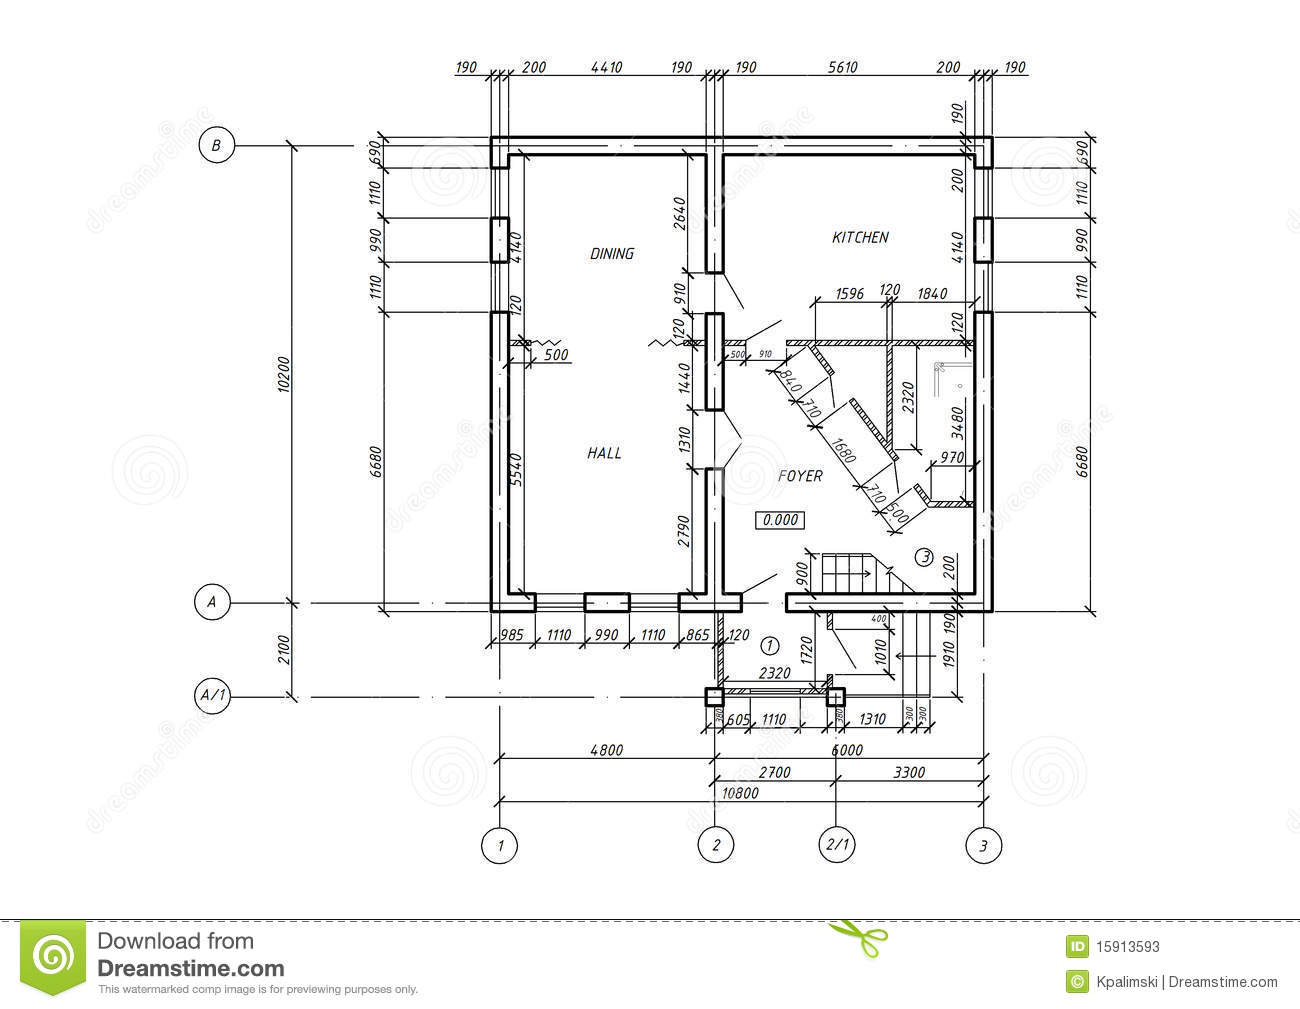 Cad architectural plan blueprint stock illustration for Architecture design blueprint